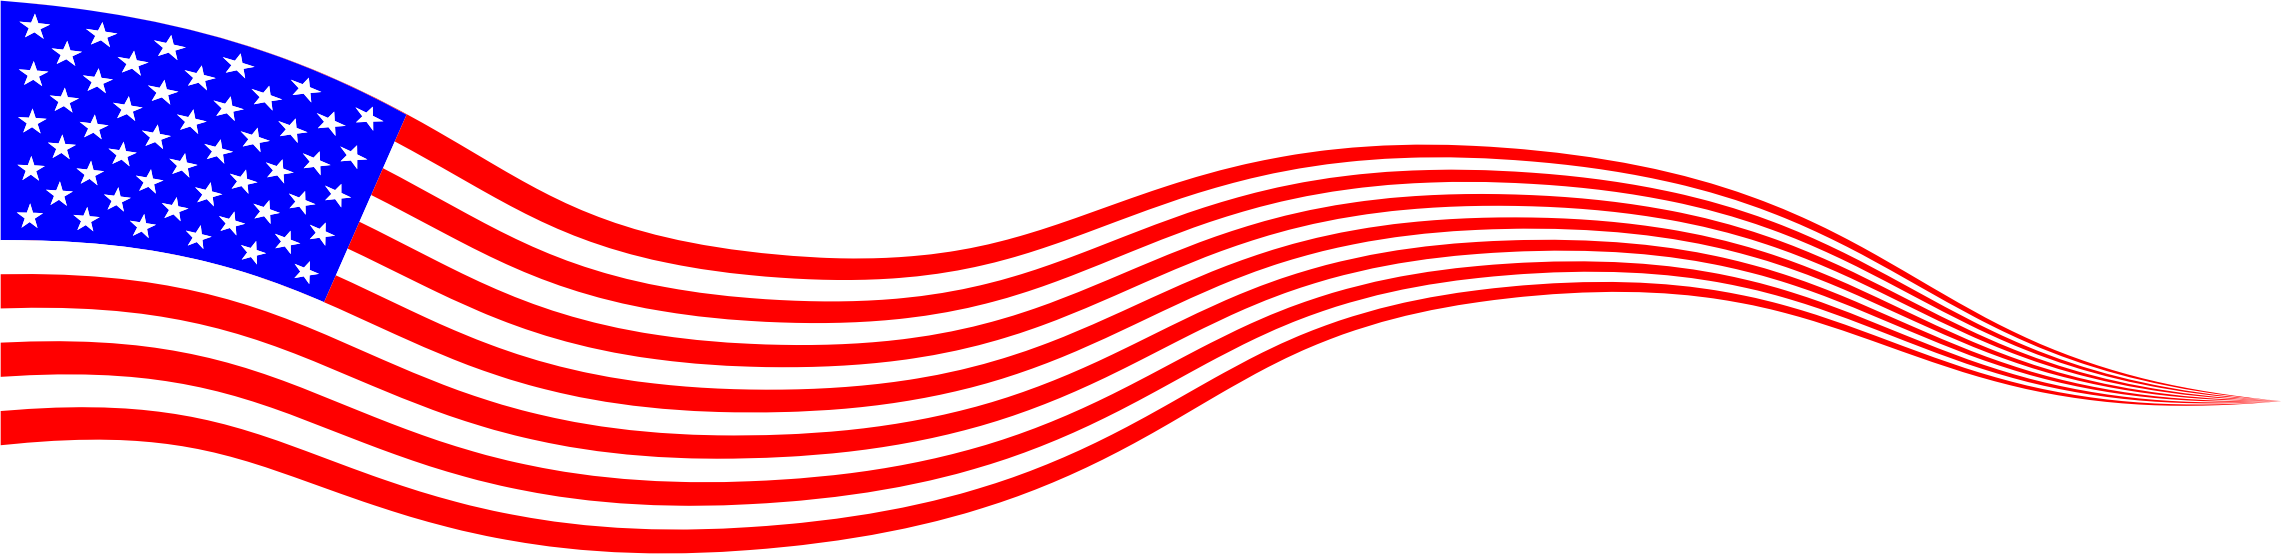 Usa flag banner by. Square clipart wavy